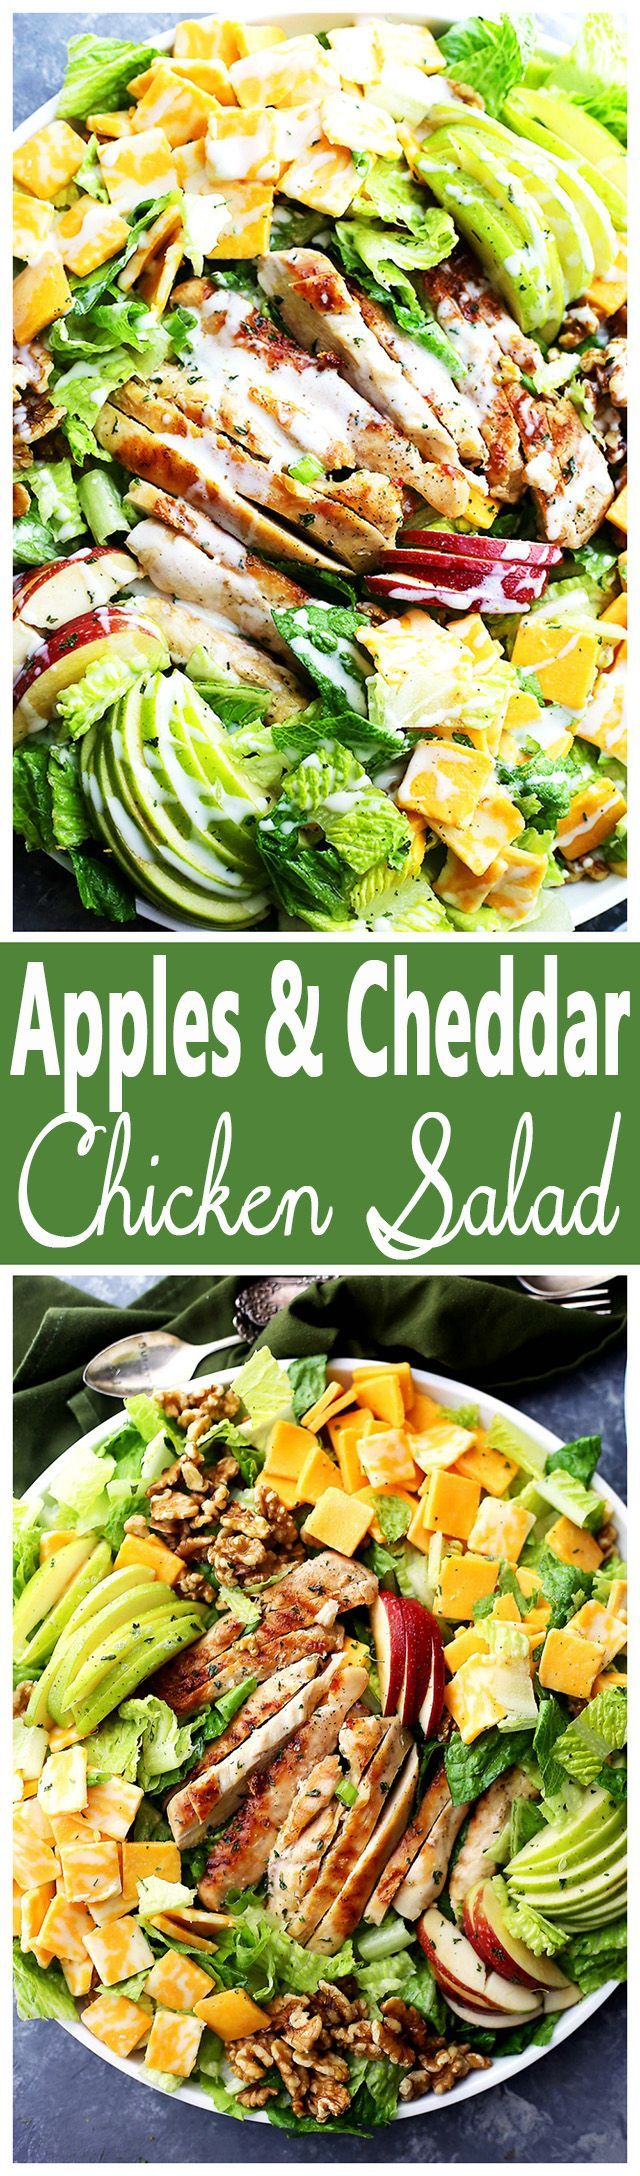 Apples and Cheddar Chicken Salad – Apples, cheddar cheese and walnuts pack a delicious crunchy bite in this Chicken Salad with